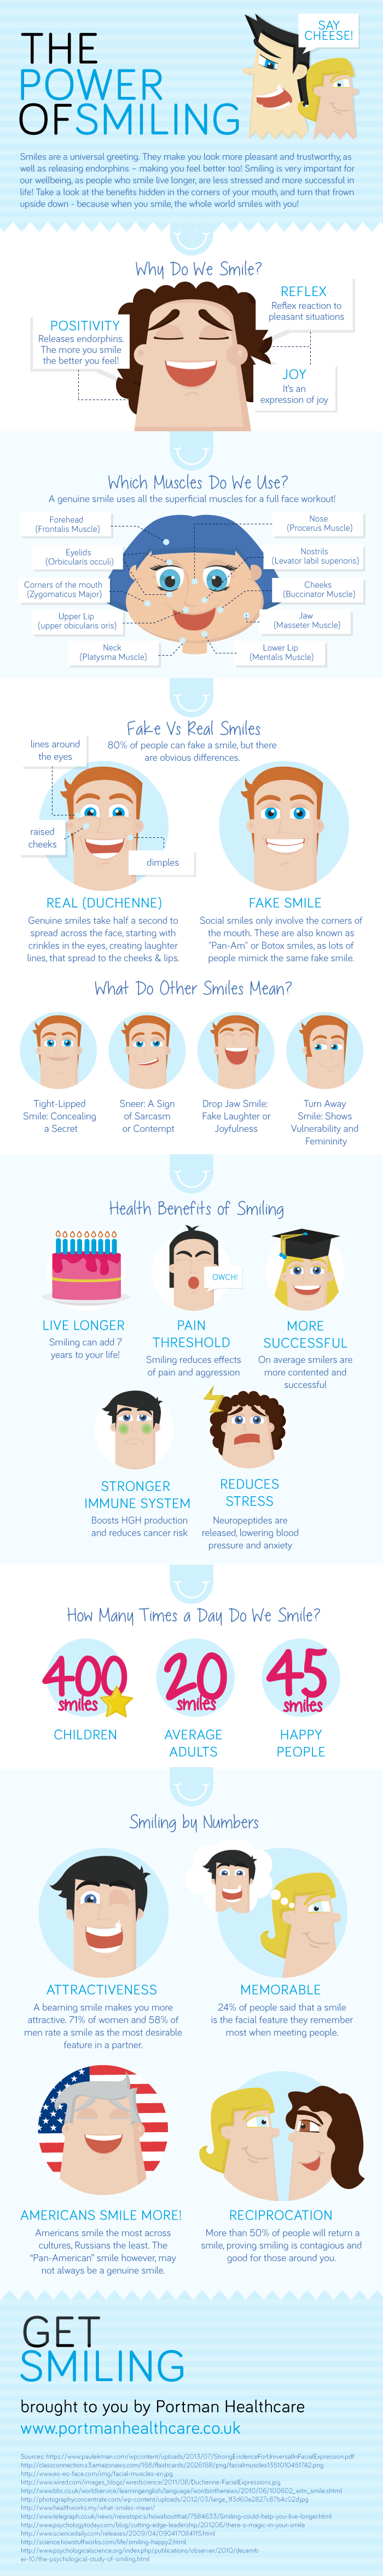 health-benefits-of-smiling-infographic